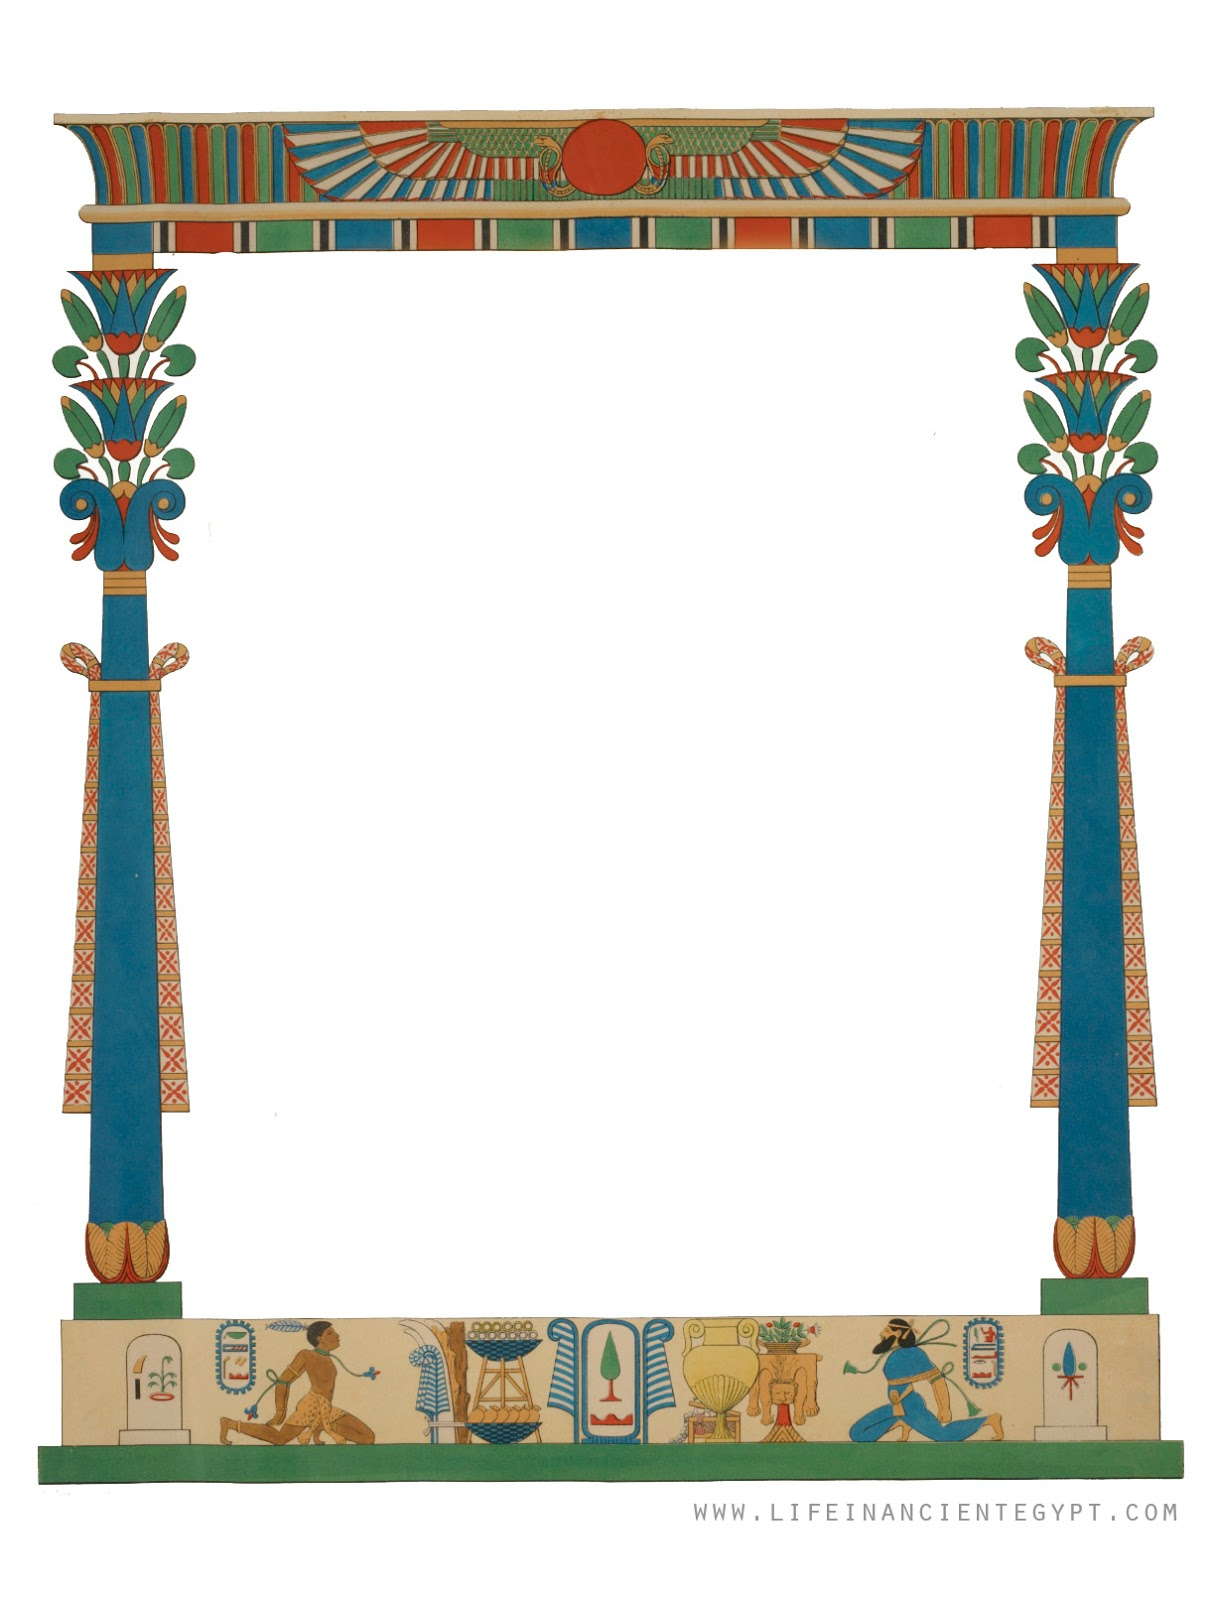 Free Printable Ancient Egyptian Clipart Frame For Page Borders Or Printable Stationery